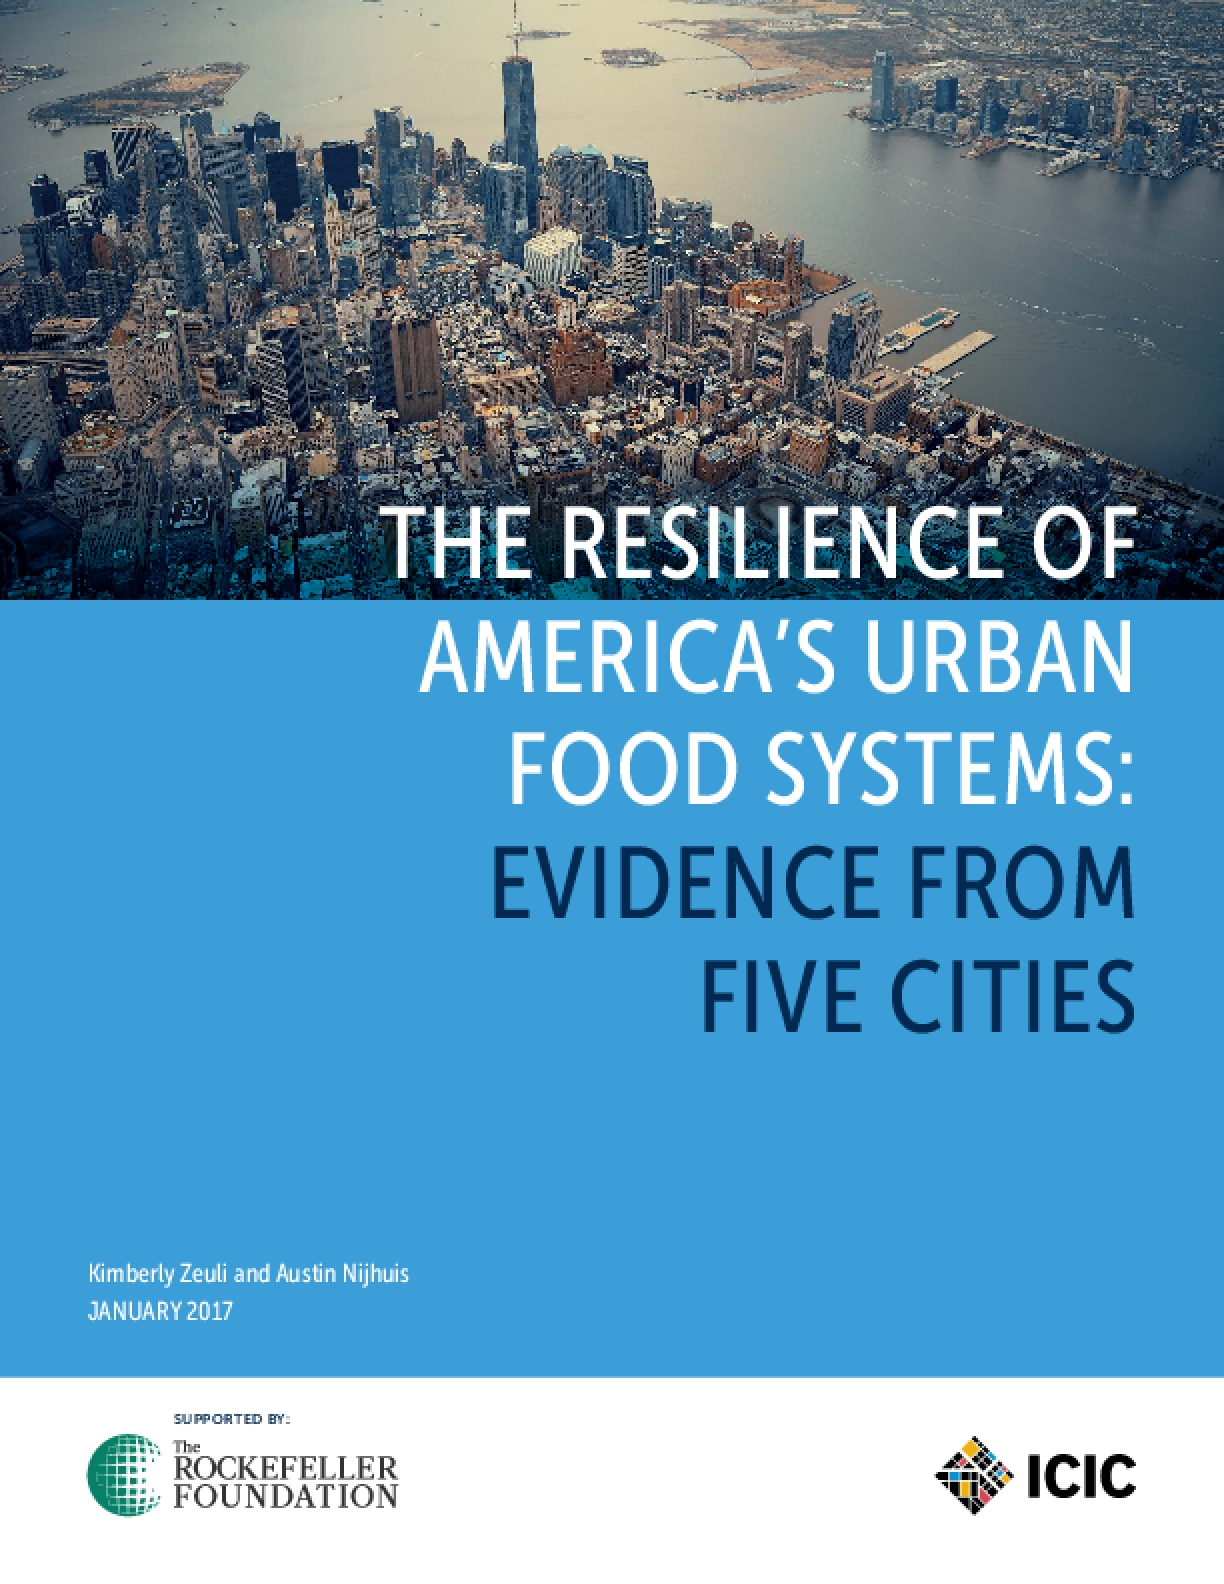 The Resilience of America's Urban Food Systems: Evidence from Five Cities